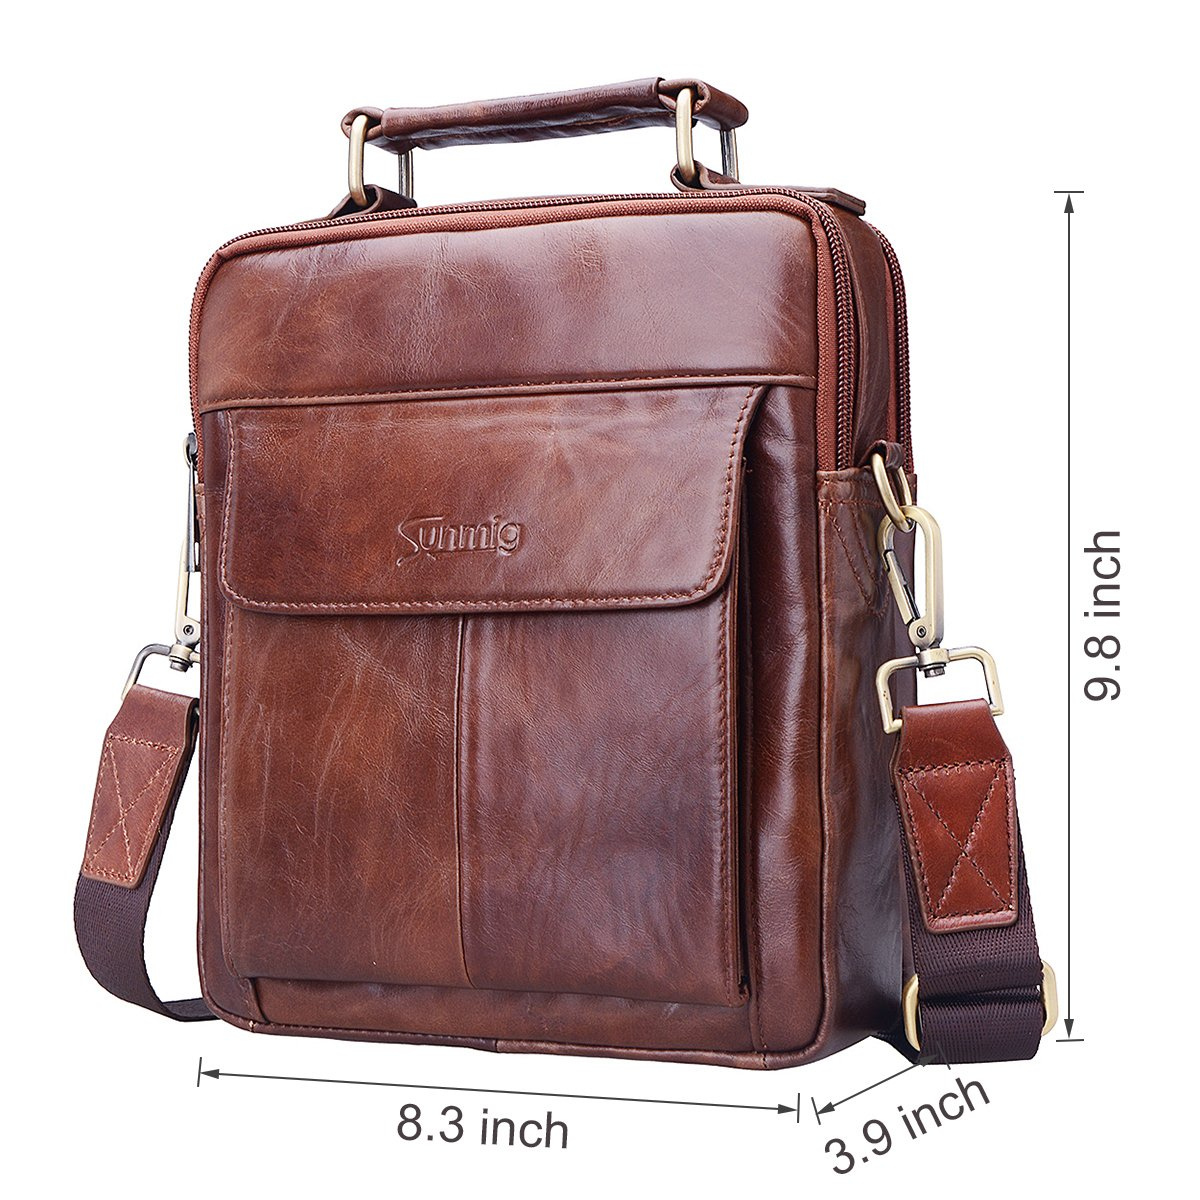 Sunmig Men's Genuine Leather Shoulder Bag Messenger Briefcase CrossBody Handbag (Brown) by Sunmig (Image #3)